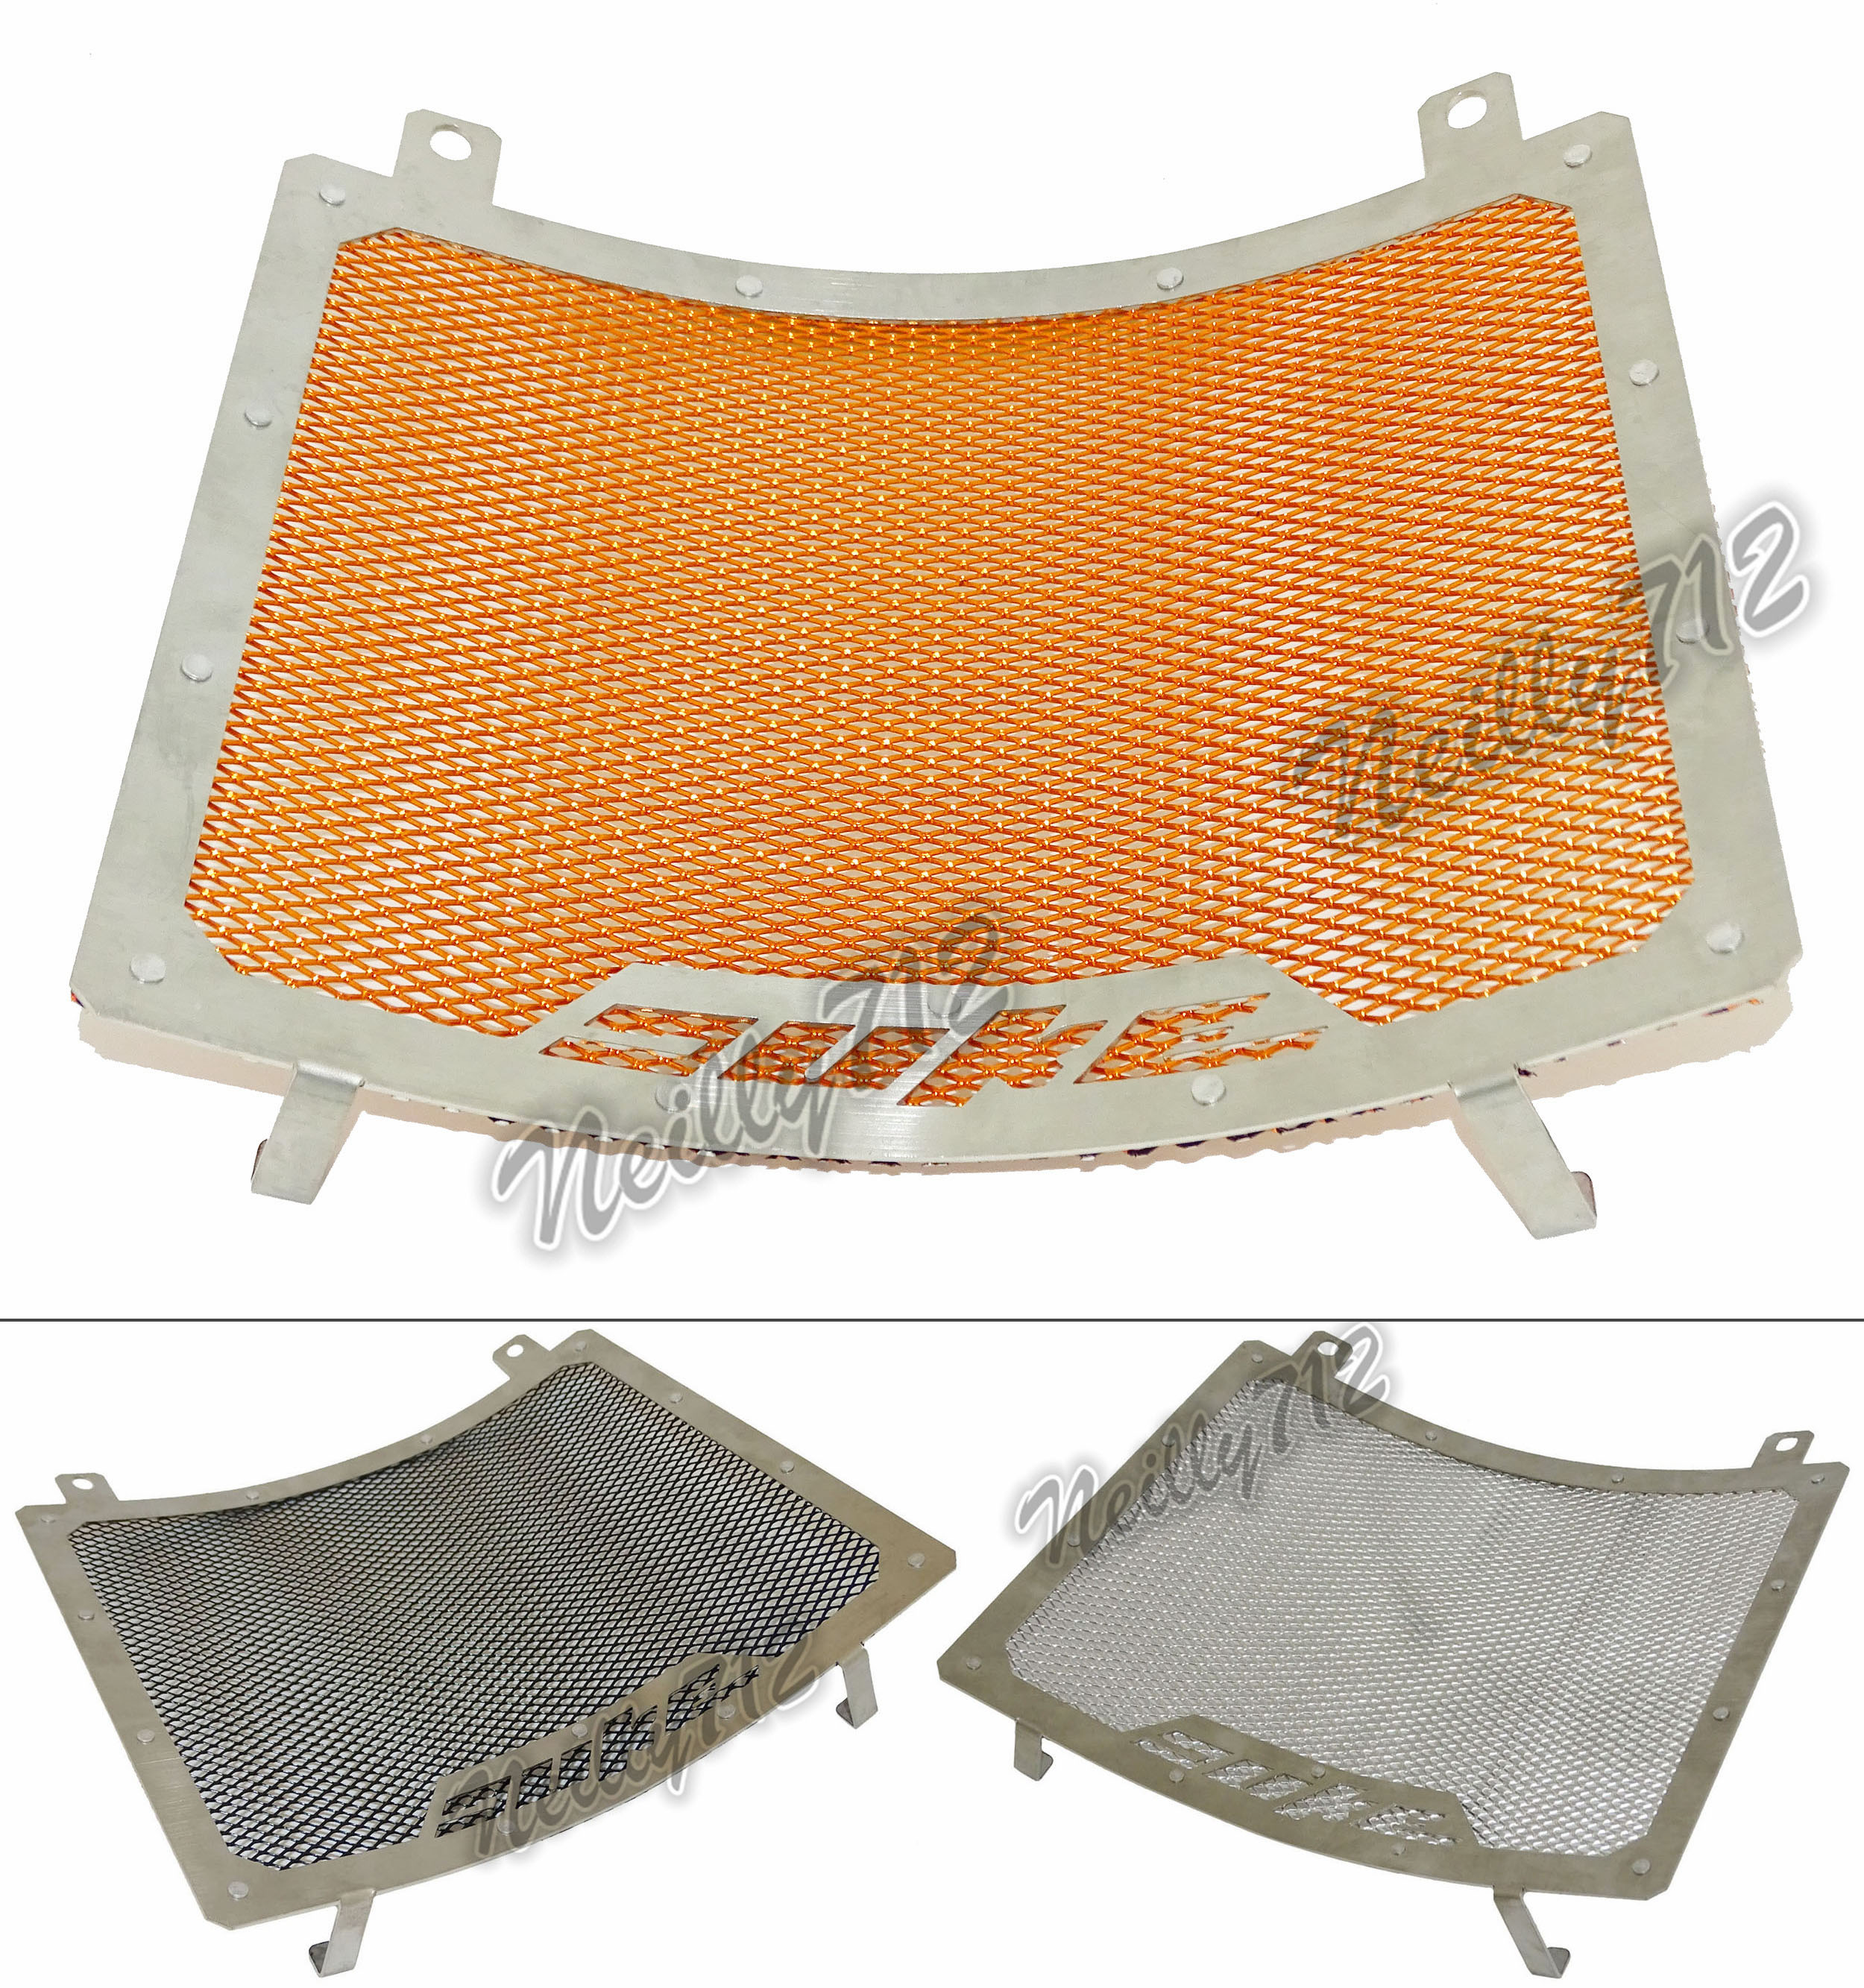 Radiator Protective Cover Grill Guard Grille Protector For KTM Duke 690 2012 2013 2014 2015 2016 2017 radiator protective cover grill guard grille protector for suzuki hayabusa gsxr1300 2008 2009 2010 2011 2012 2013 2014 2015 2017